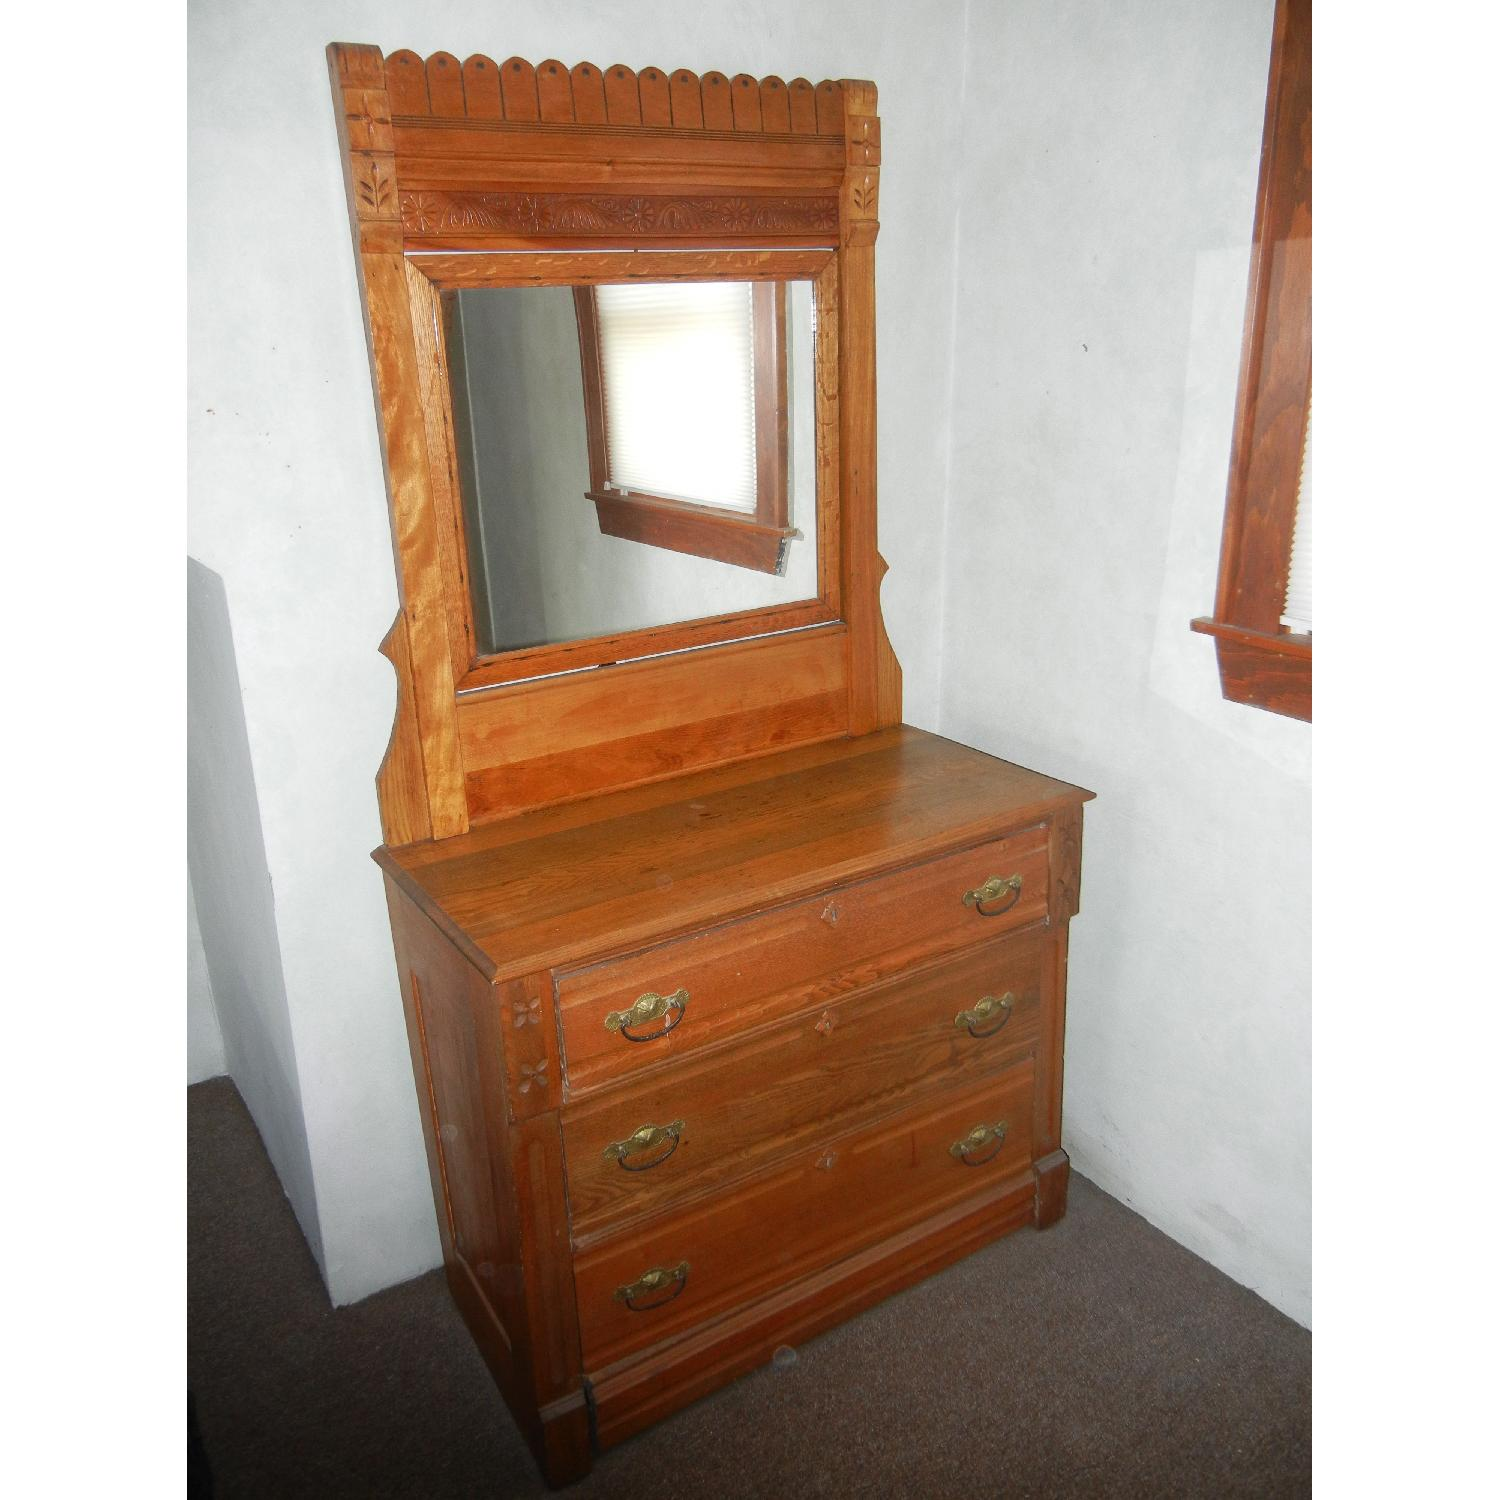 Antique East Lake Dresser with Mirror - image-1